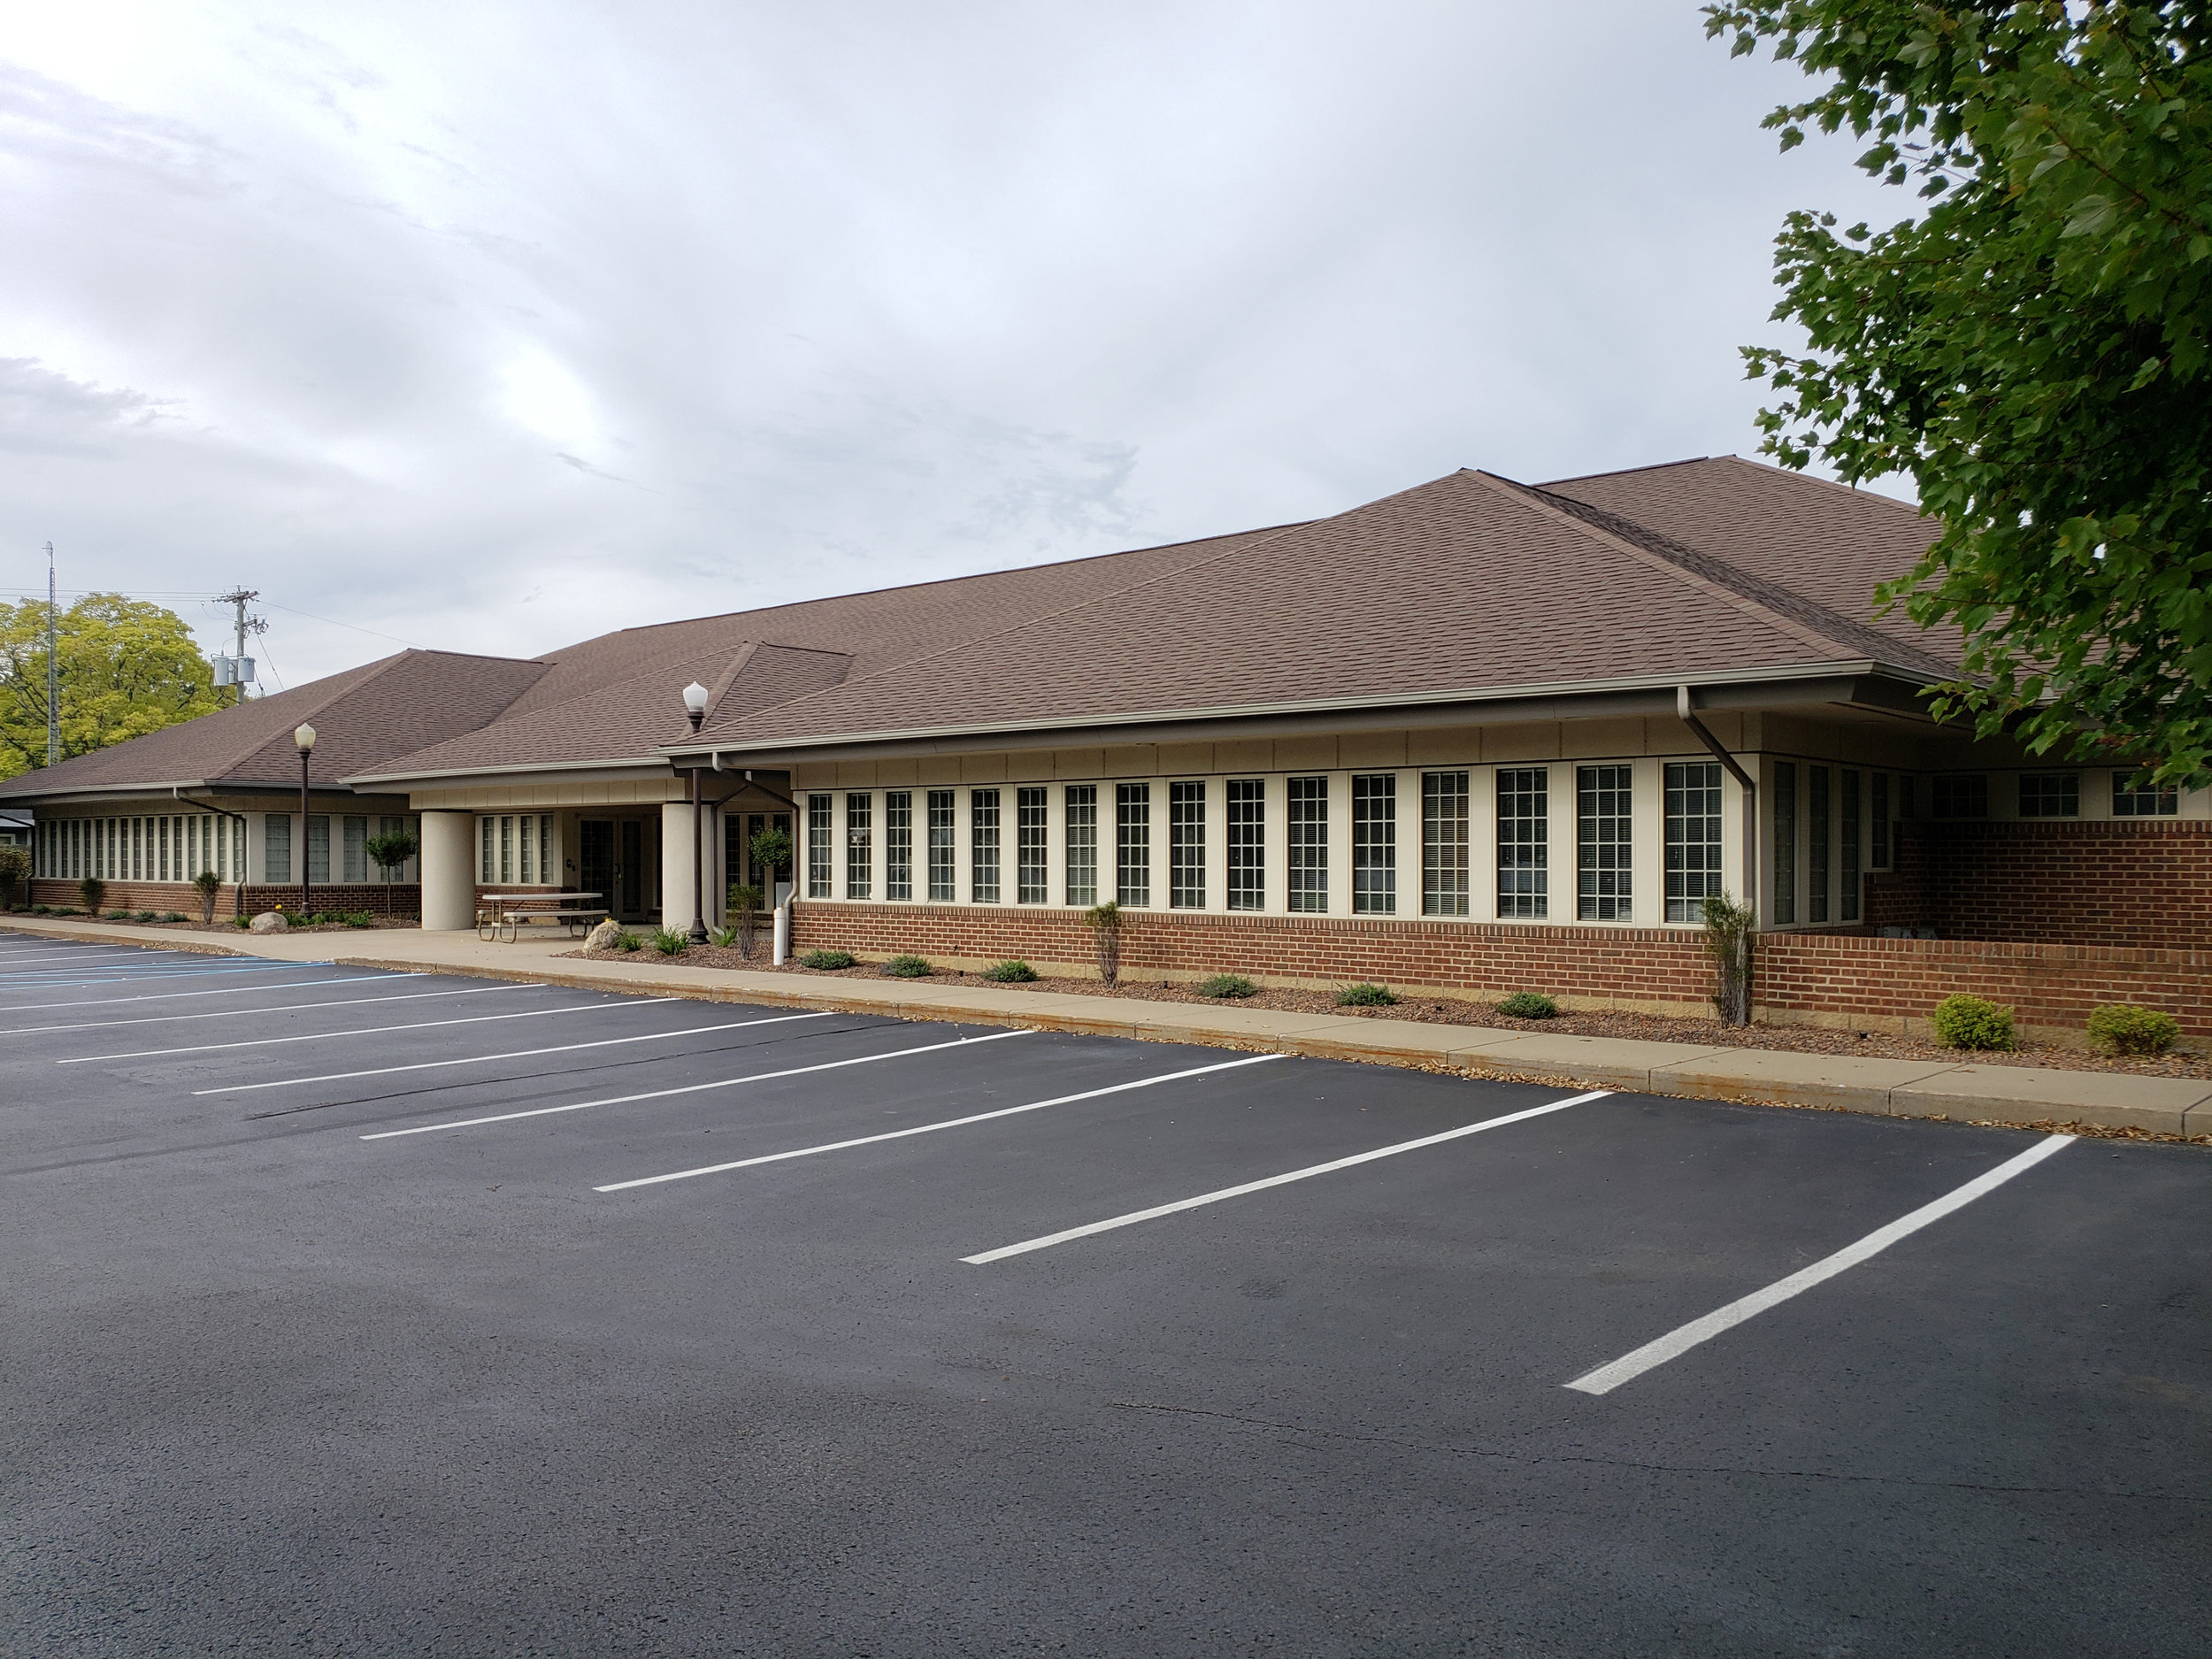 Abbott Eye Center Exterior 10 2019.jpg